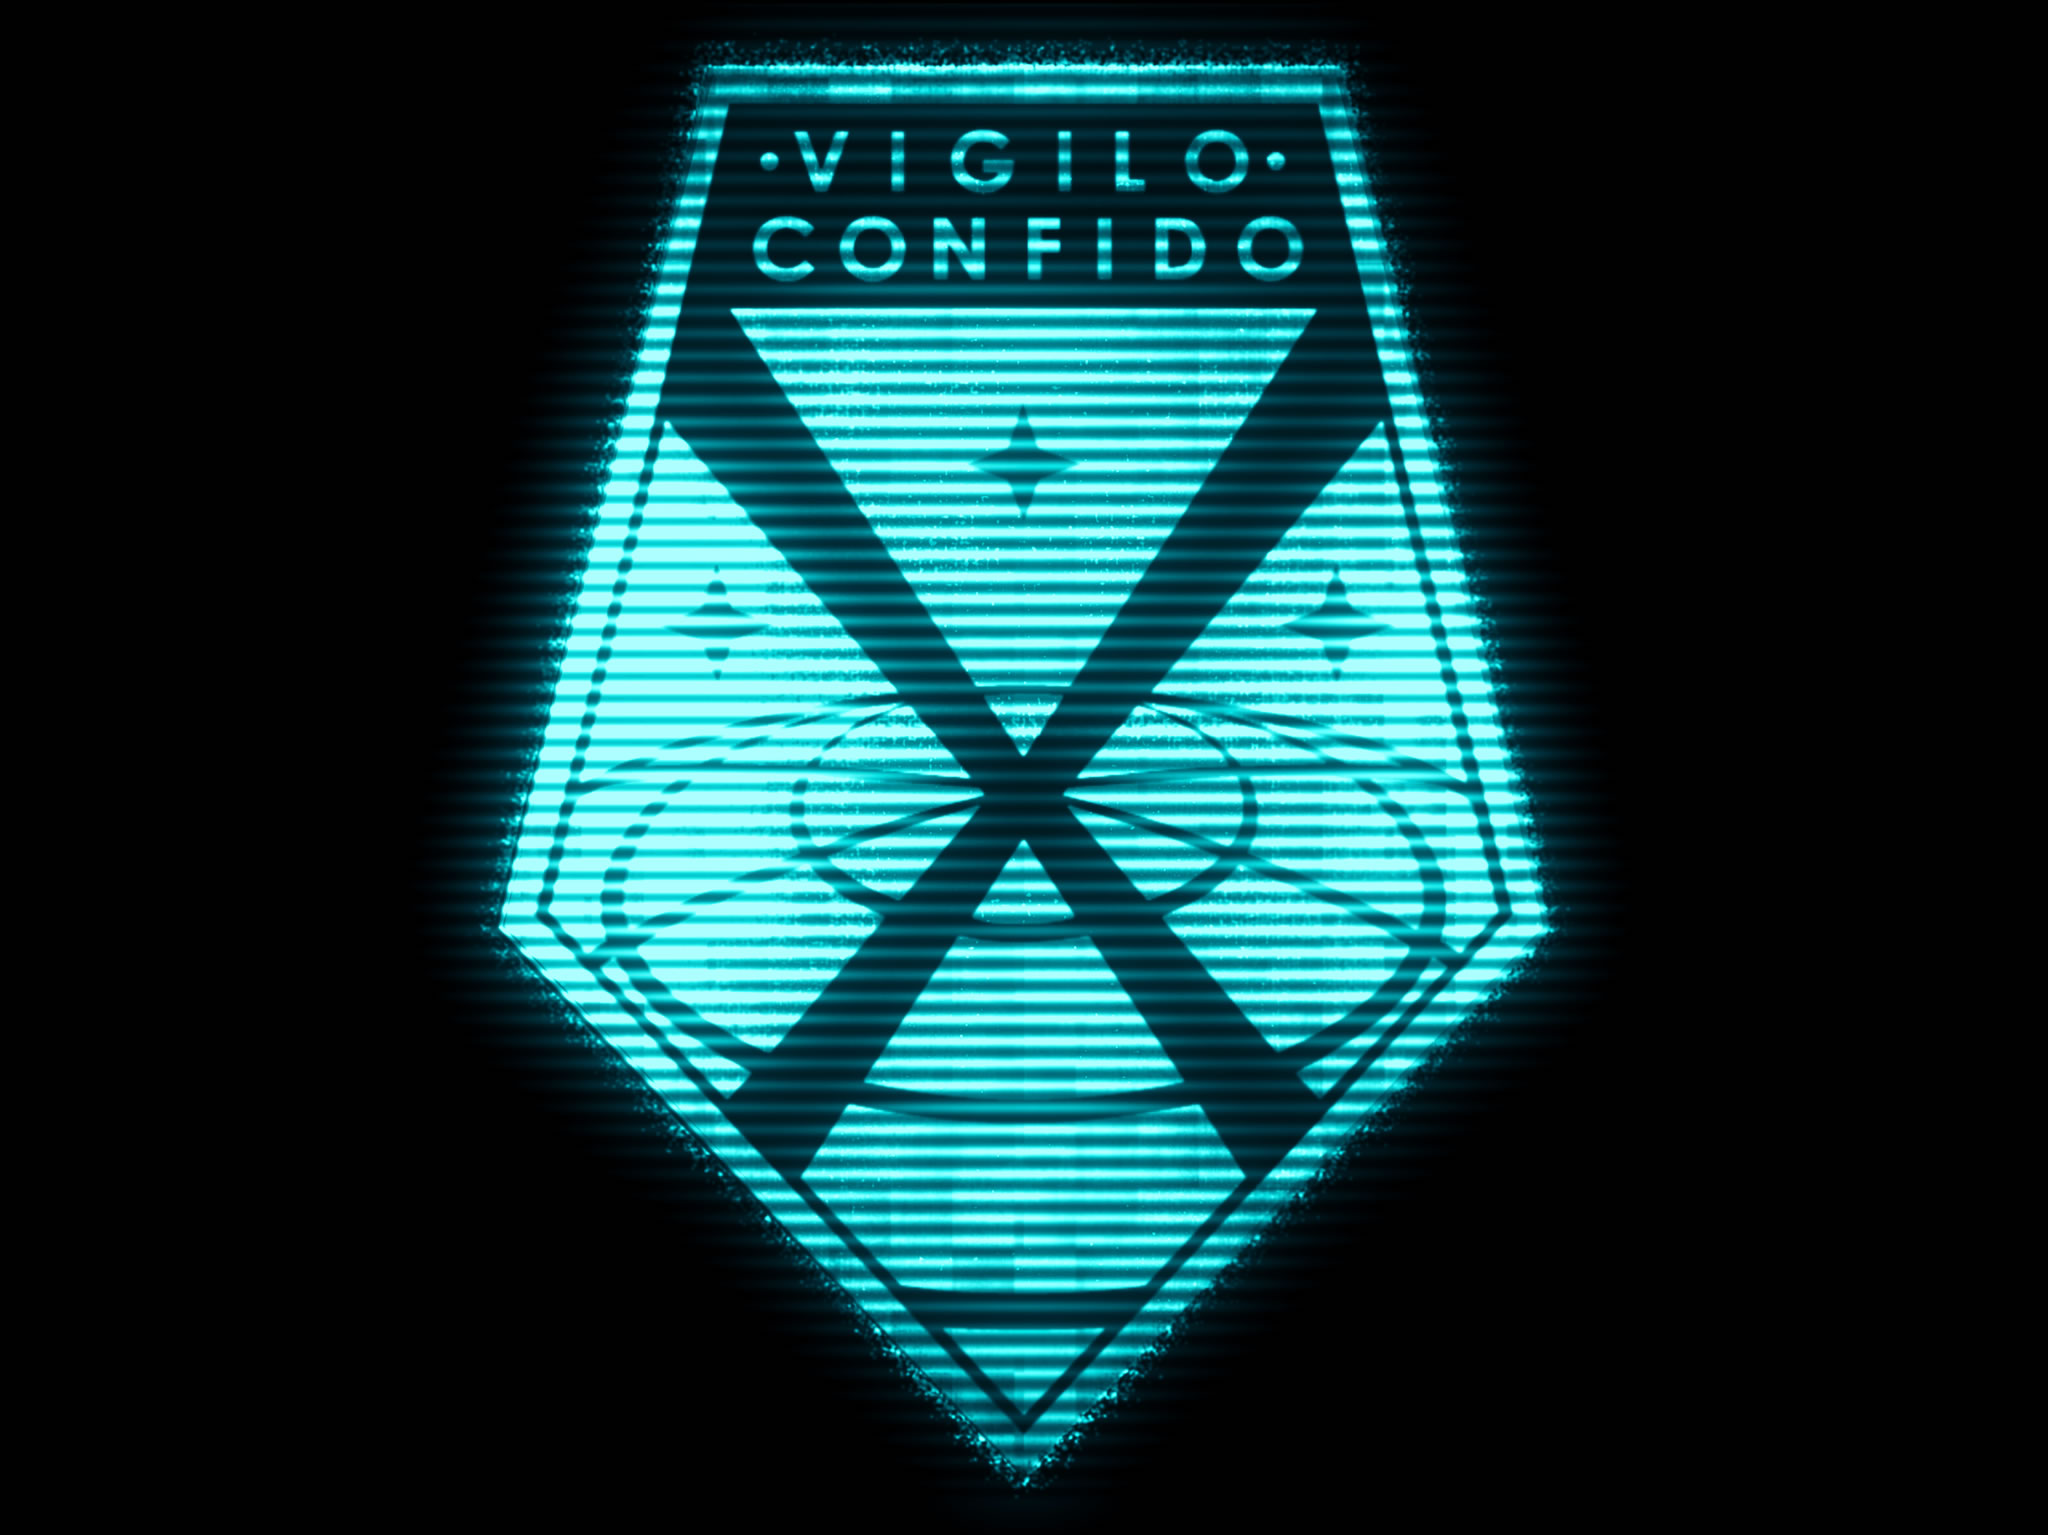 Xcom enemy unknown not the shooter out now use new for Portent xcom not now